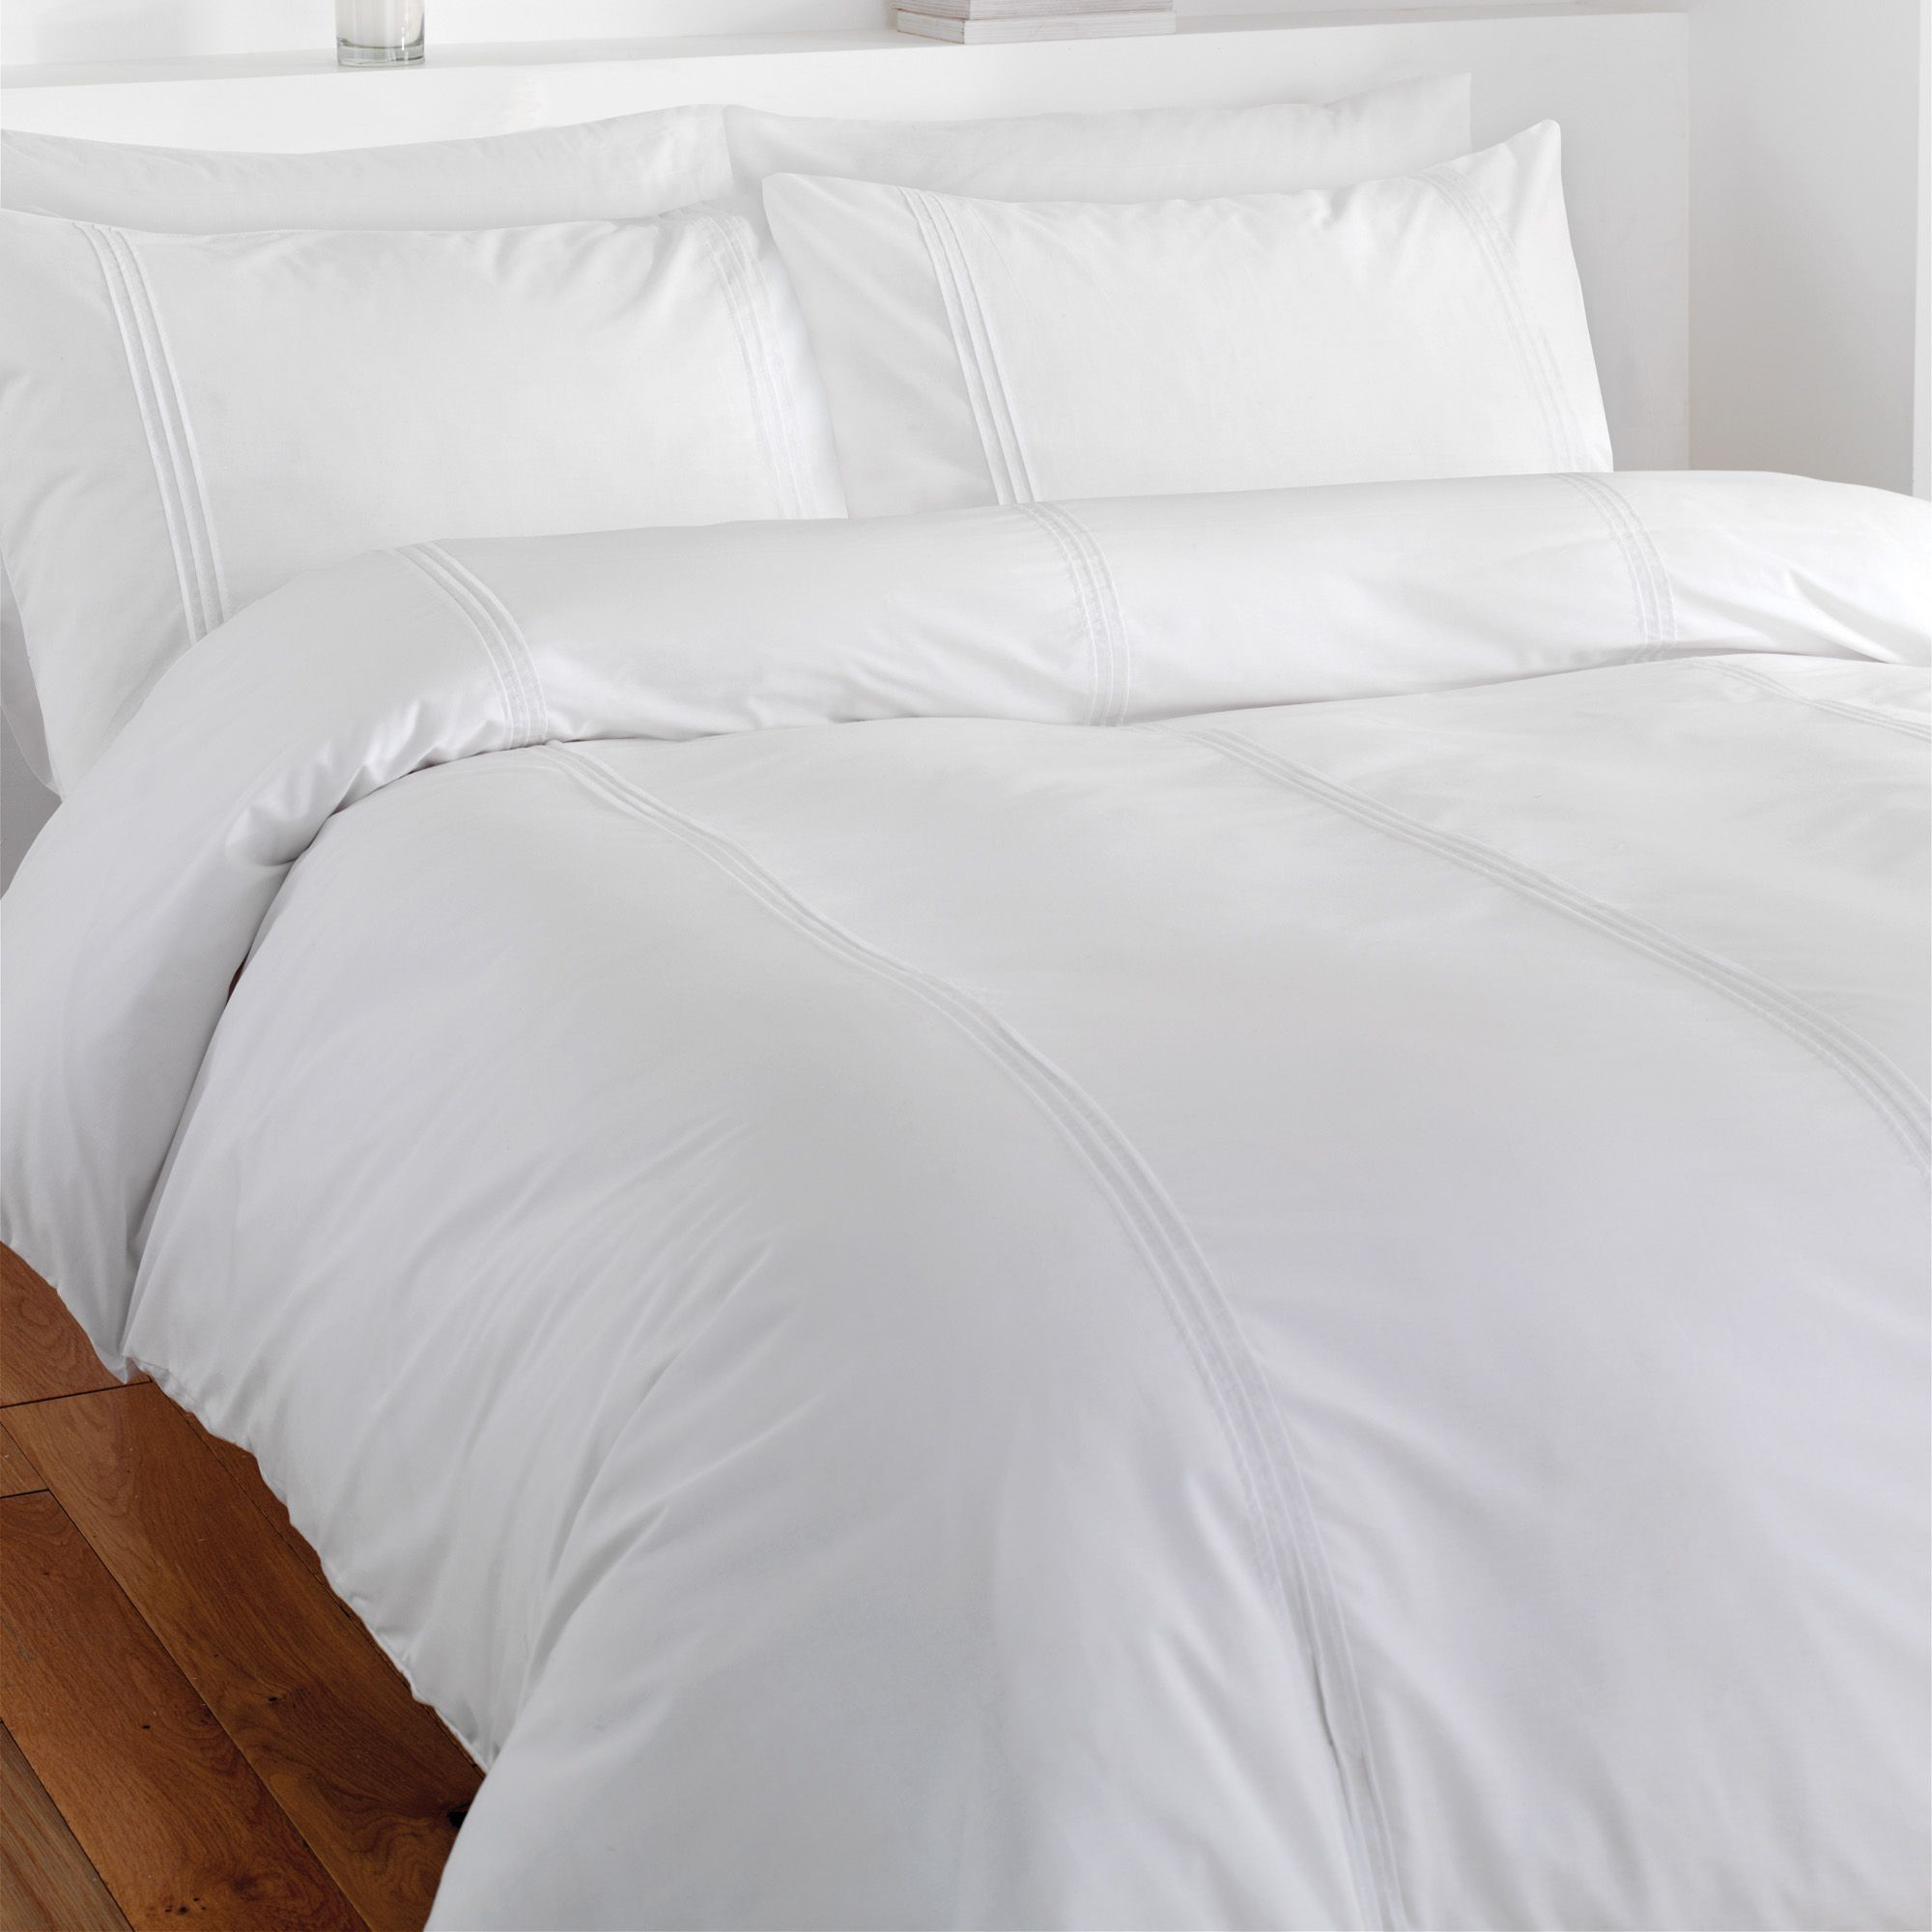 Chartwell Simplicity Plain White Single Bed Cover Set